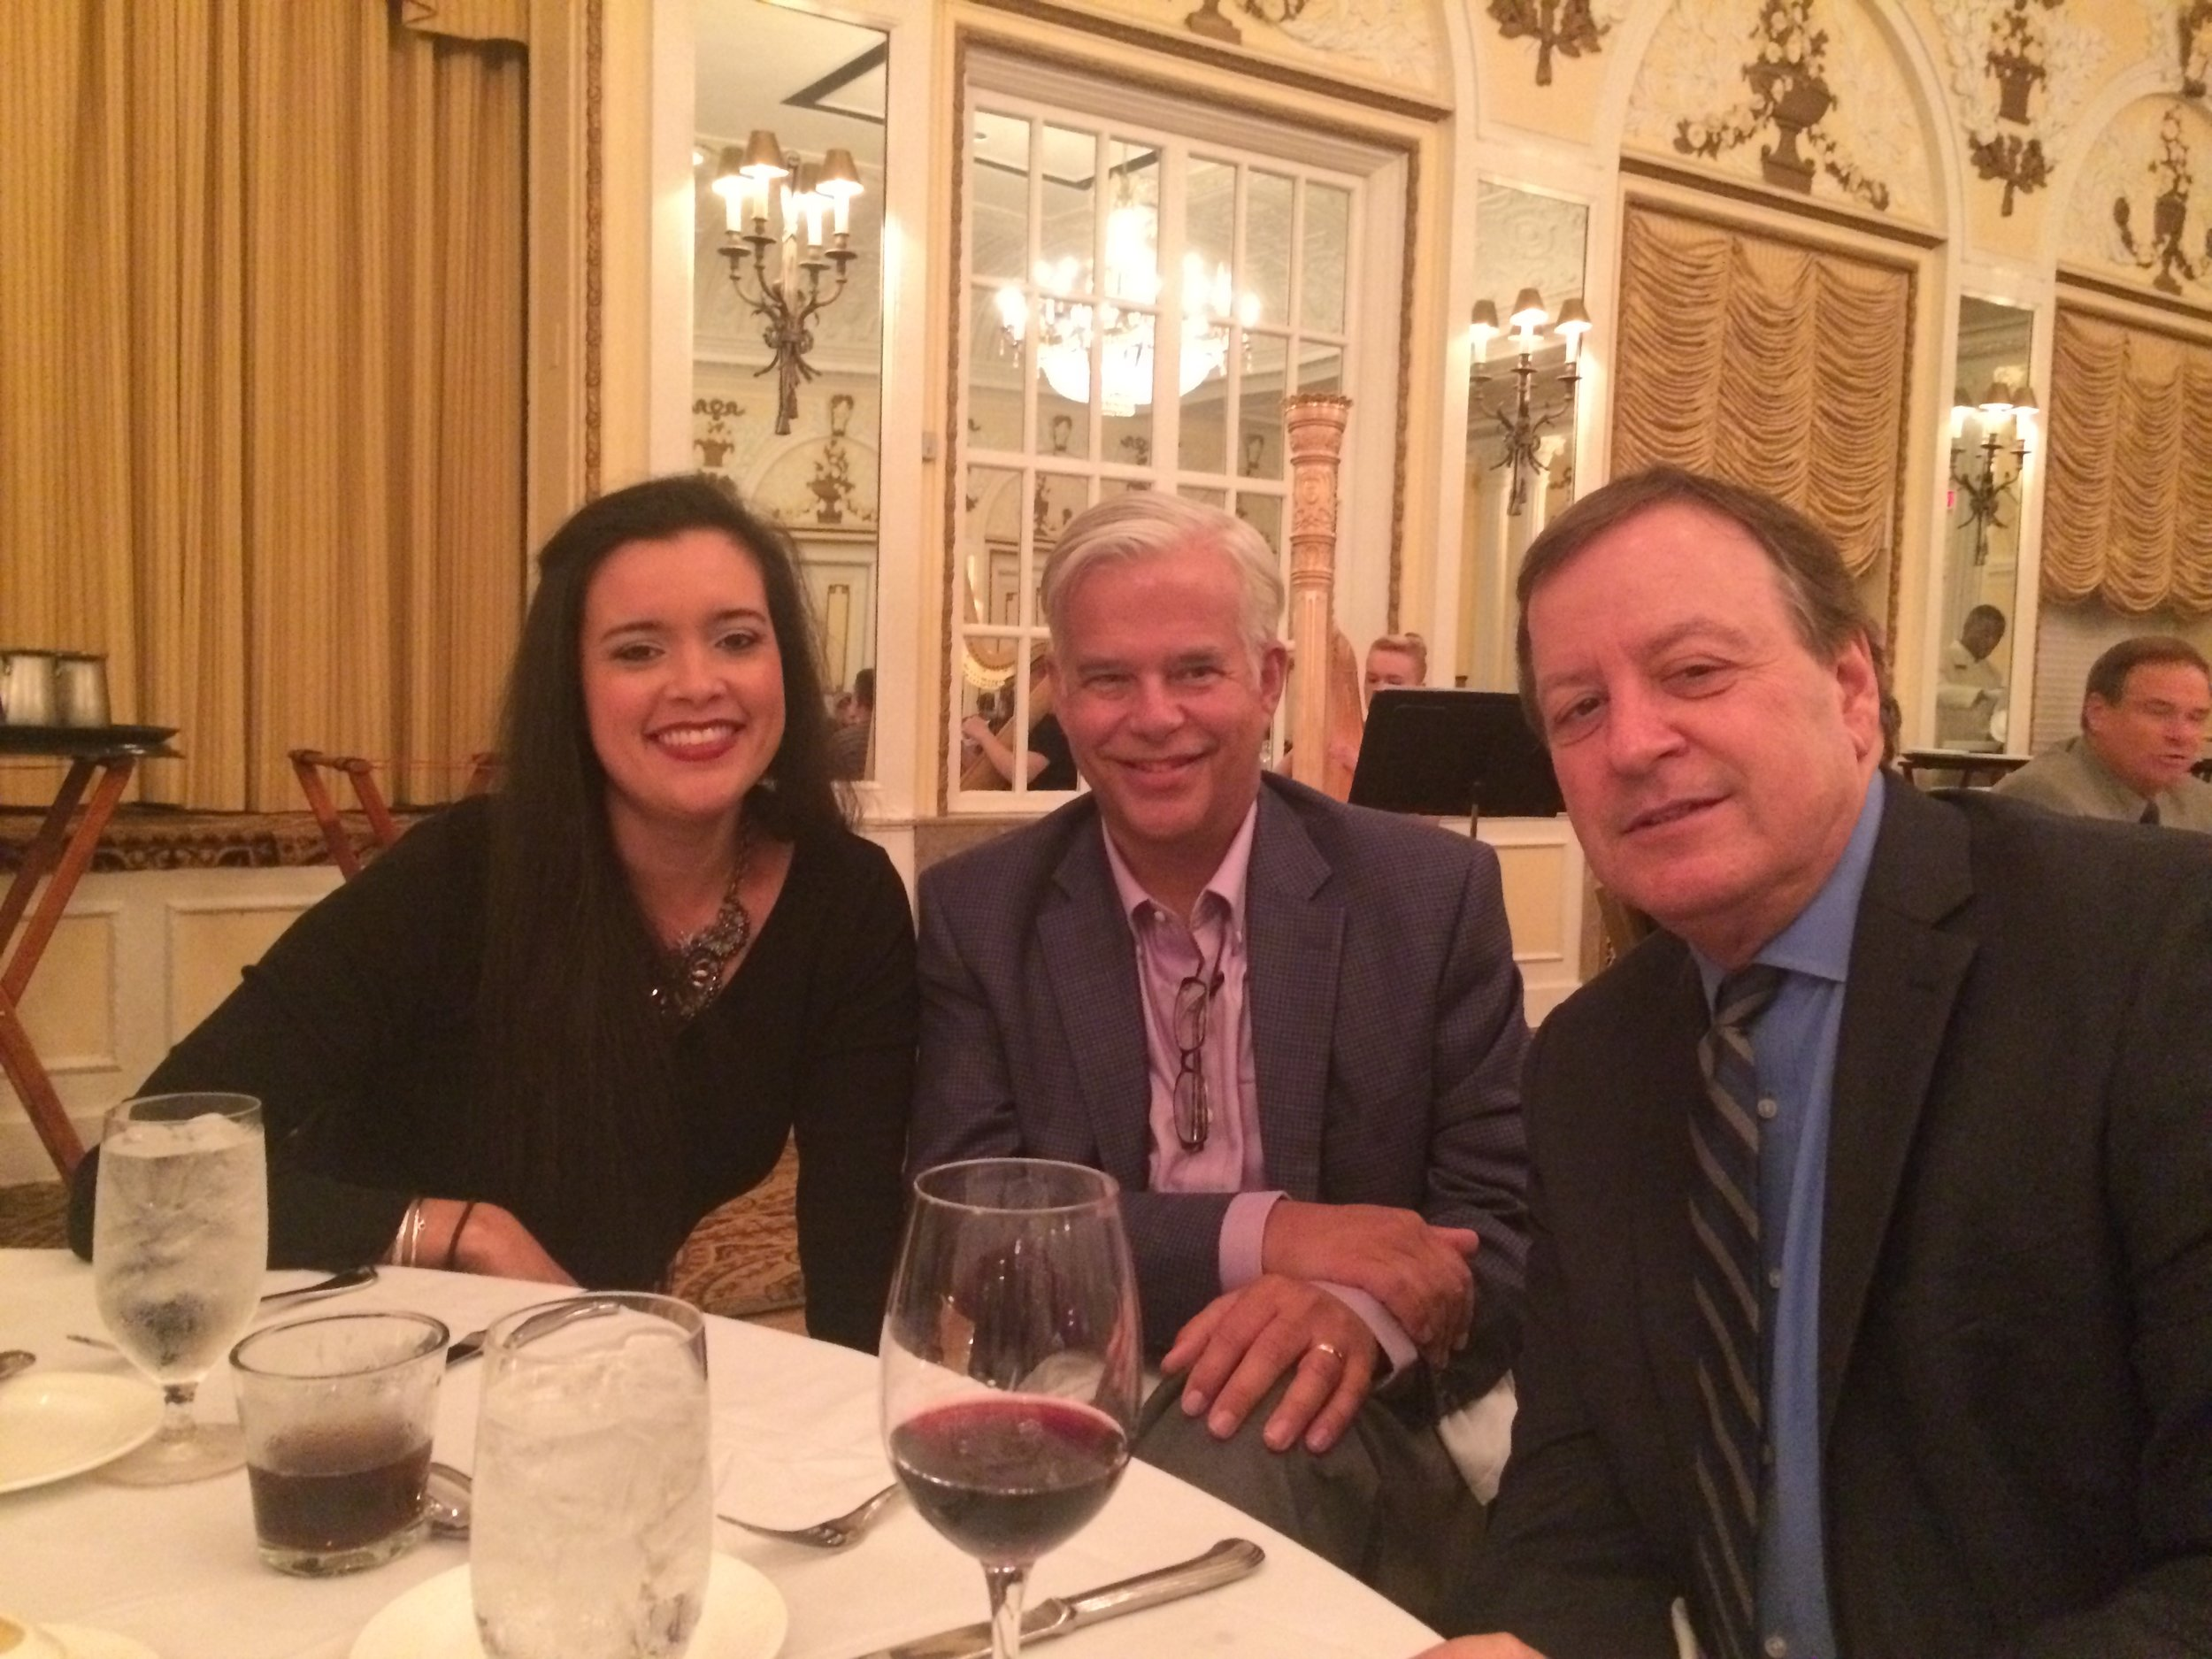 Lindsey Johns, marketing coordinator (left), Barry Rubens, CEO (middle), Bruce Sanders, EVP (right)